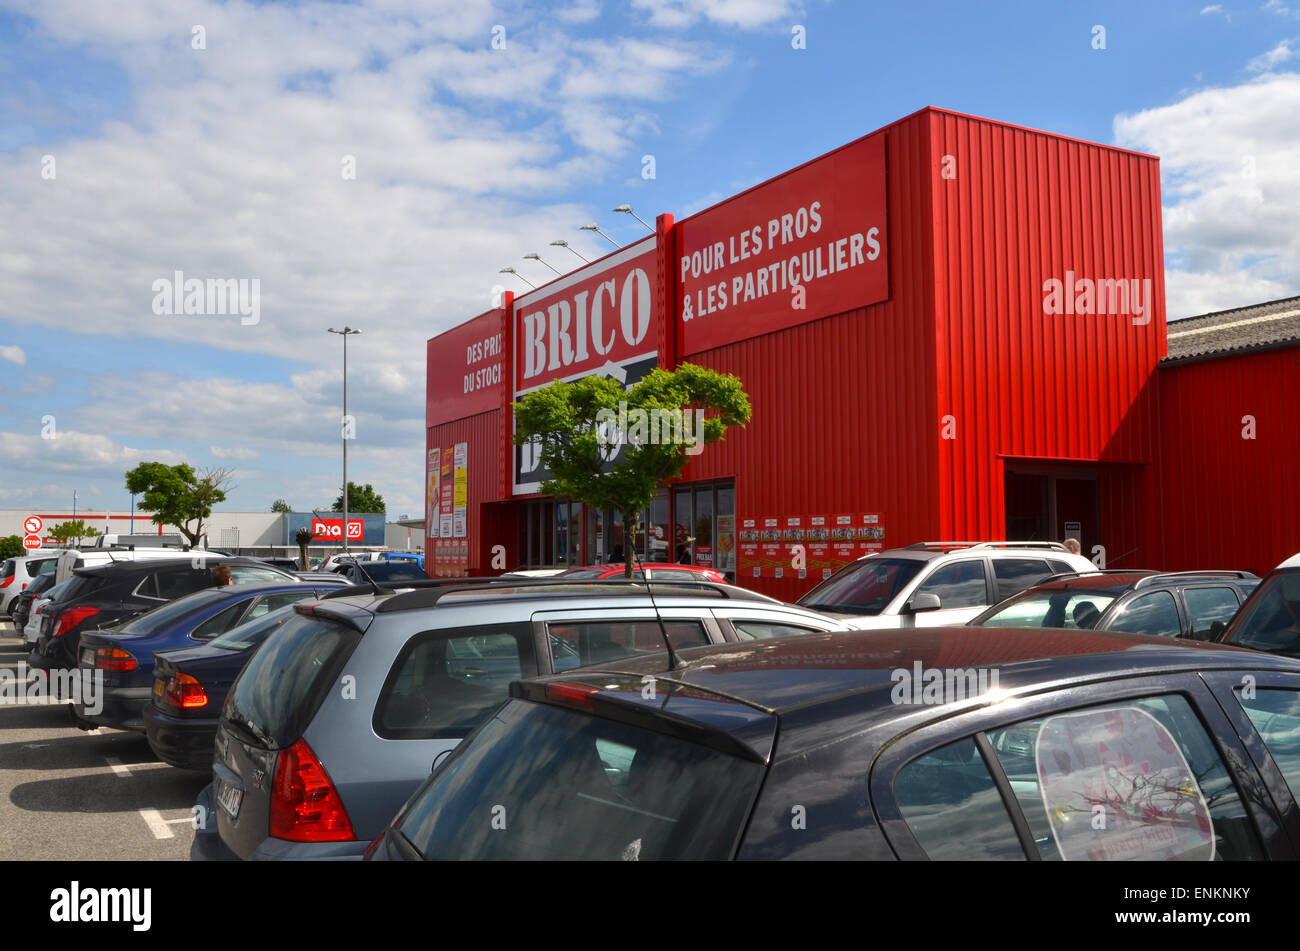 Pack Complet Terrasse Composite Brico Depot Diy Store France Stock Image With Lame